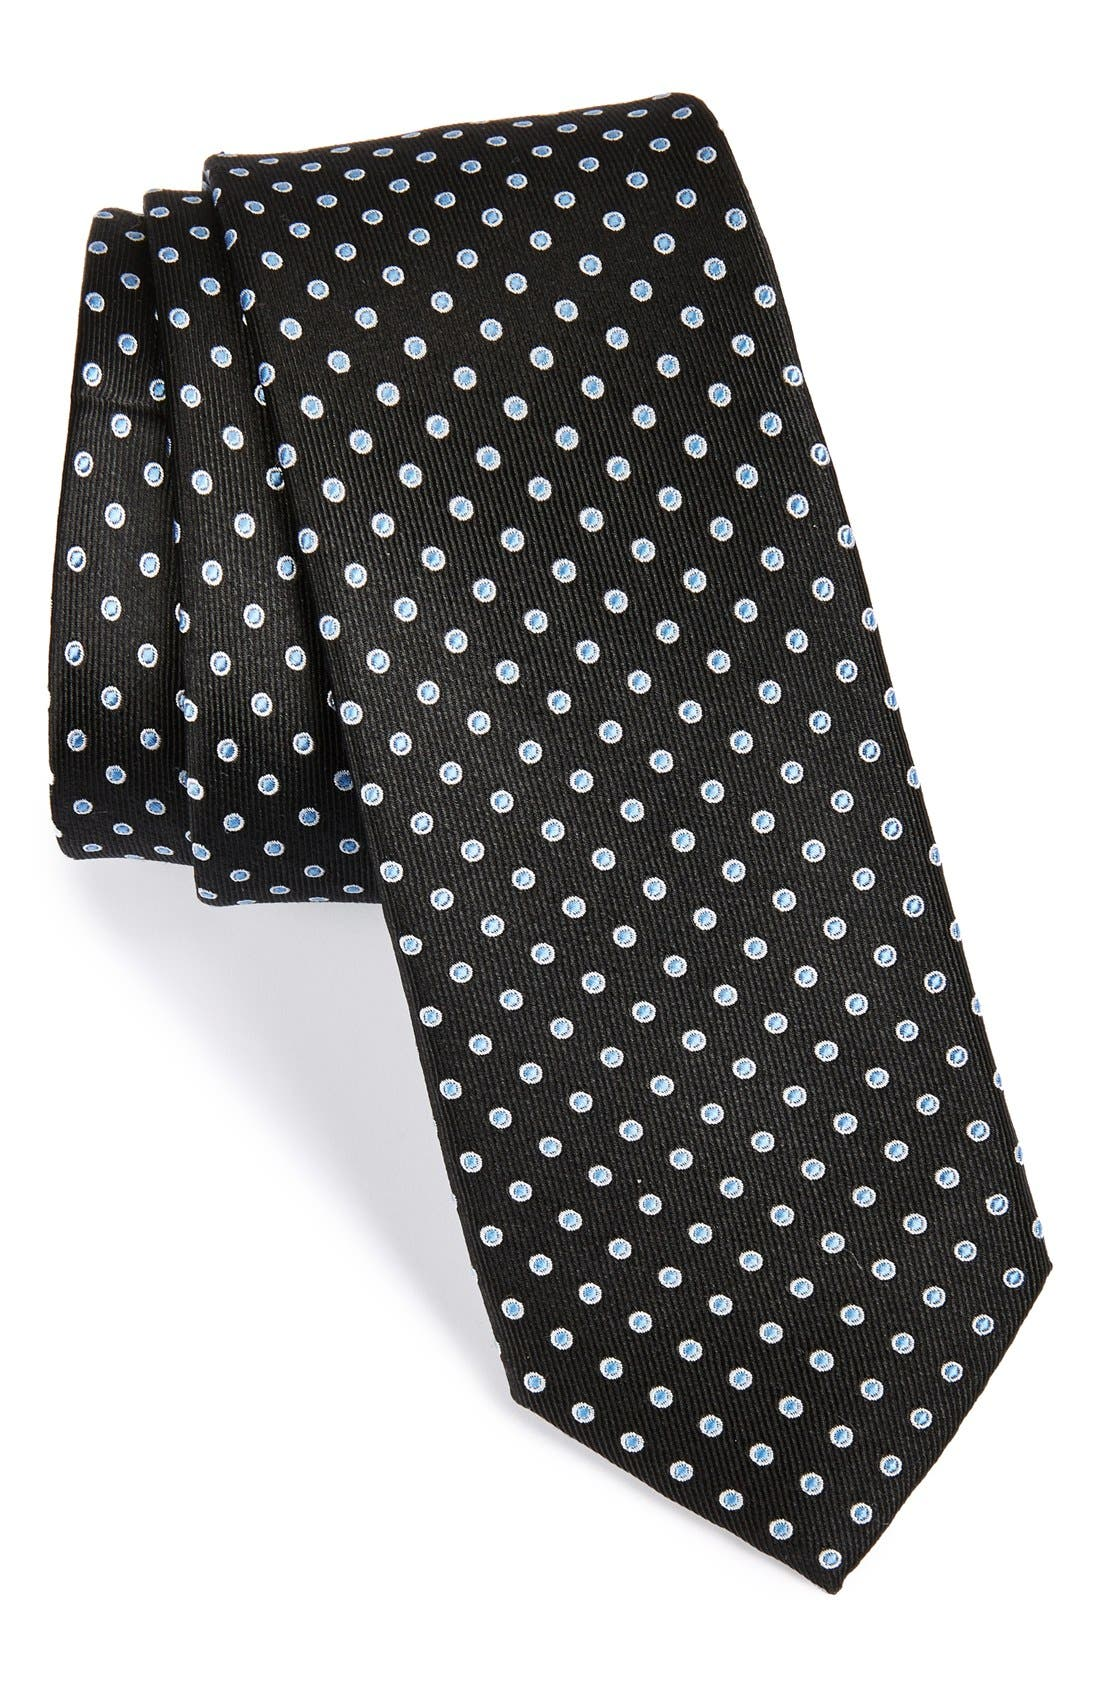 Alternate Image 1 Selected - 1901 'Grand Dot' Woven Silk Tie